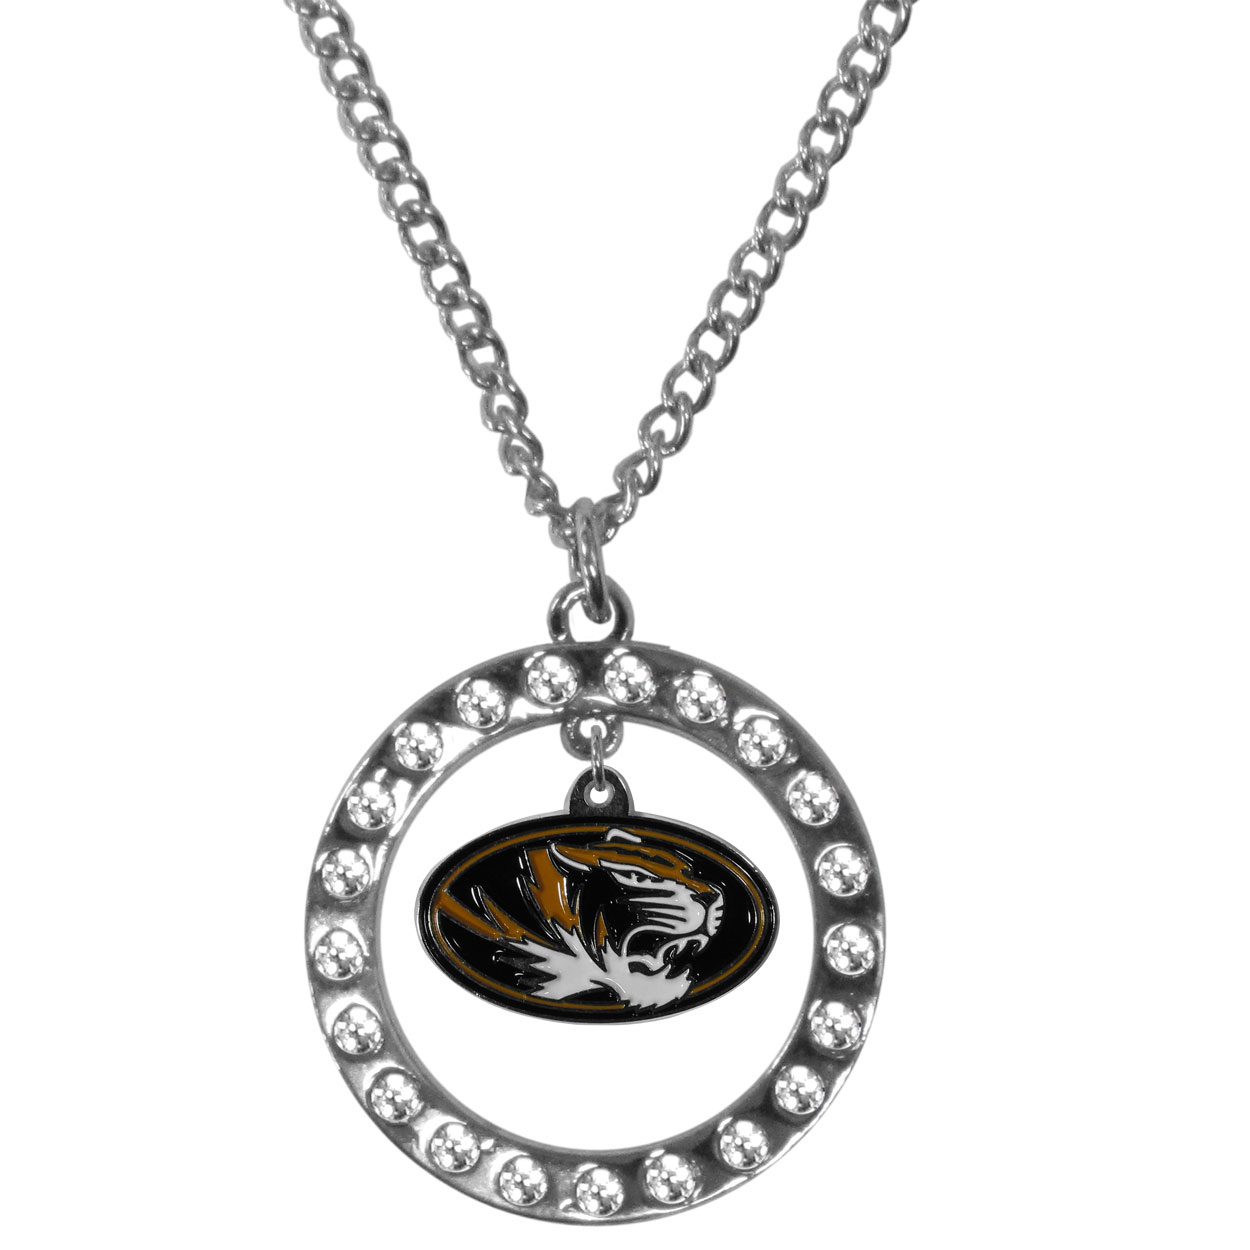 Missouri Tigers Rhinestone Hoop Necklaces - Our Missouri Tigers rhinestone hoop necklace comes on an 18 inch chain and features a hoop covered in rhinestones with a high polish chrome finish and a cast and enameled team charm dangling in the center.